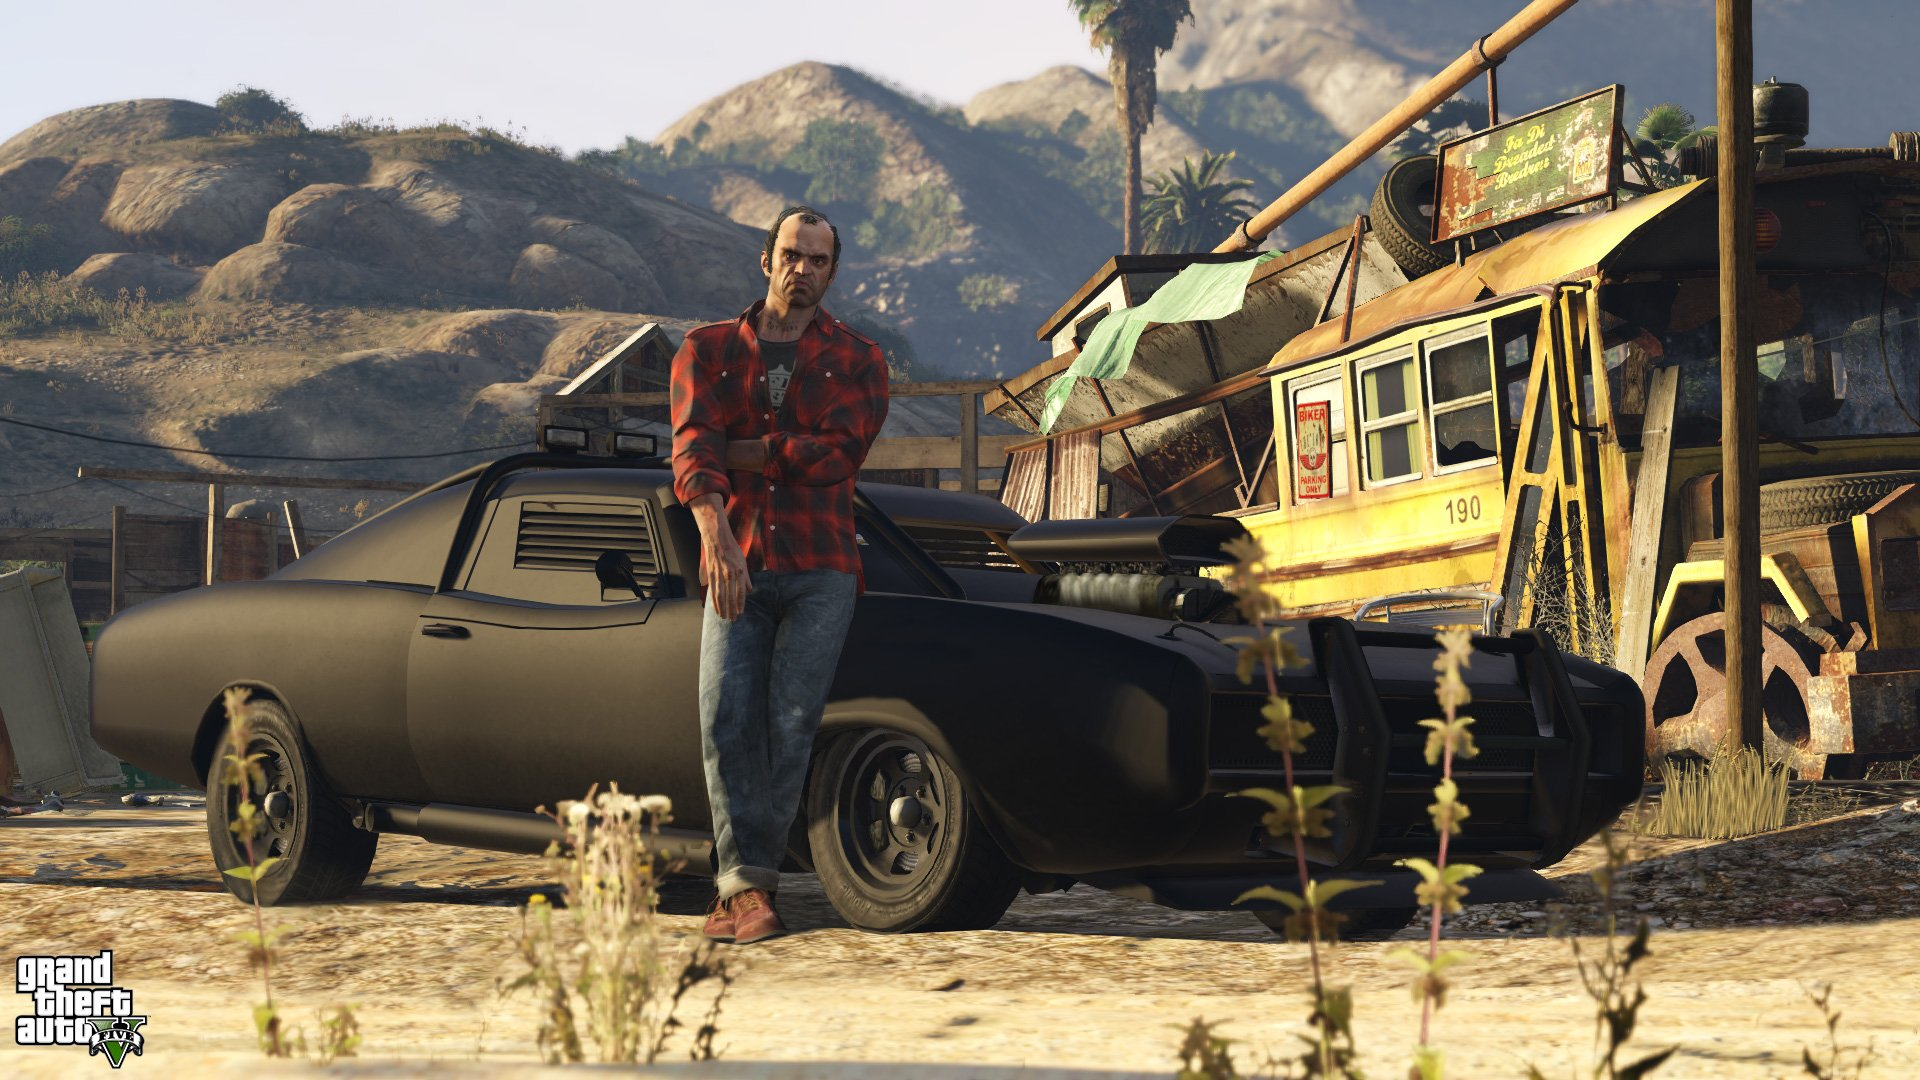 Grand Theft Auto V PS5 release date